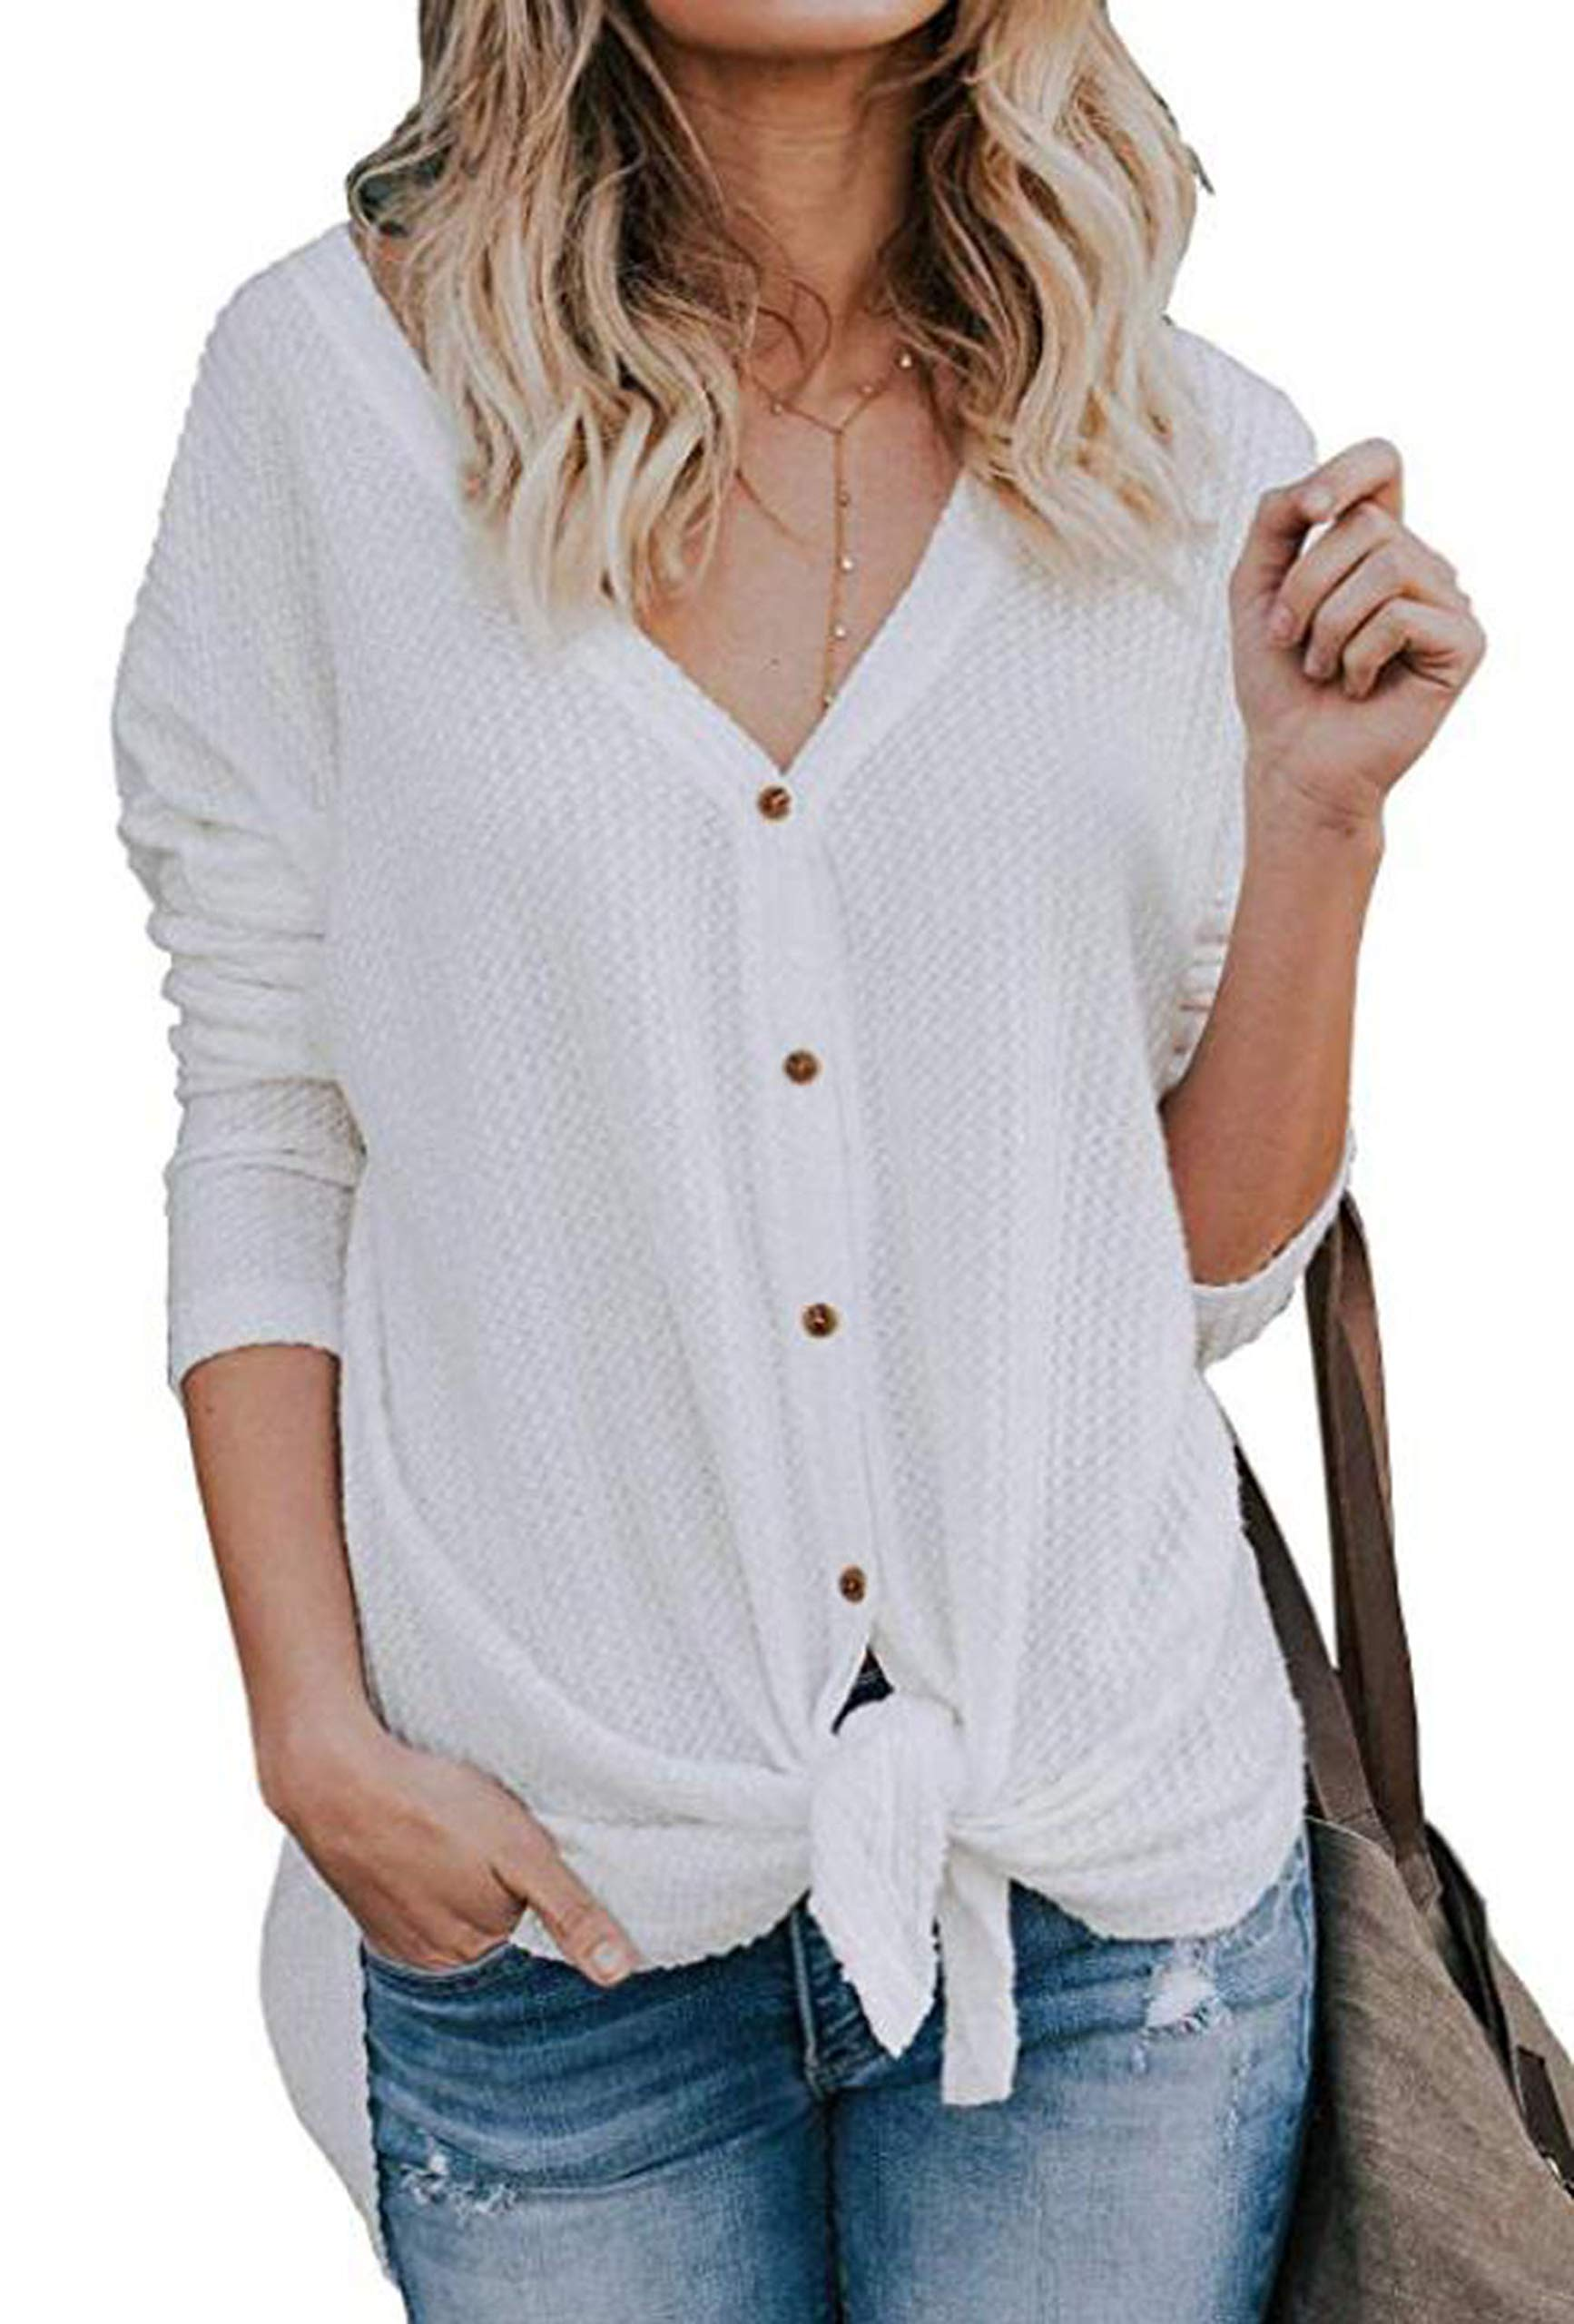 UGET Womens Long Sleeve V Neck Button Down Waffle Knit Tunic Blouse Tie Knot Henley Tops Asia S White